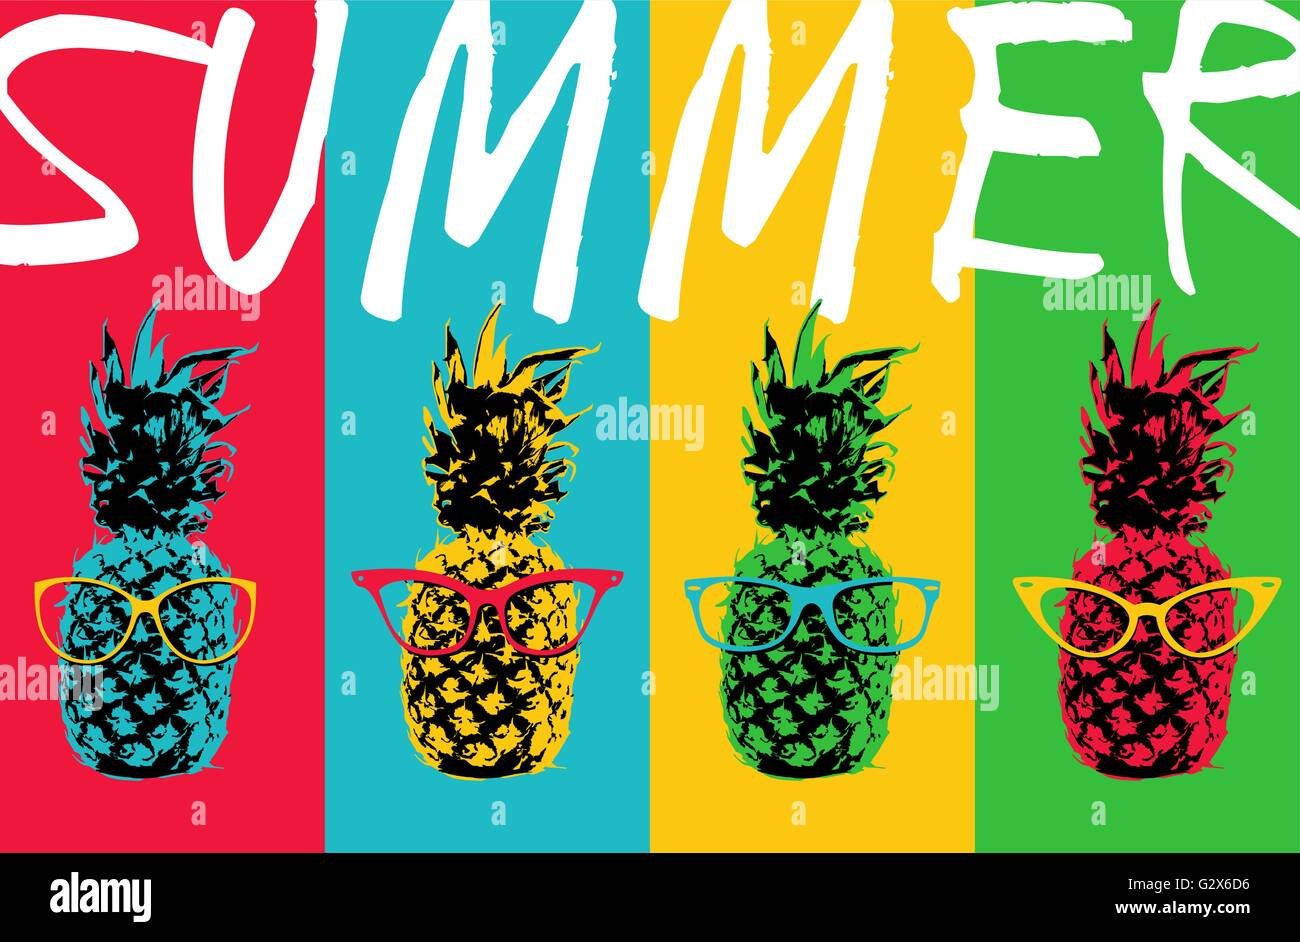 Pineapple With Sunglasses Tumblr Retro 80s Summer Concept Illustration Of Pop Art Pineapple